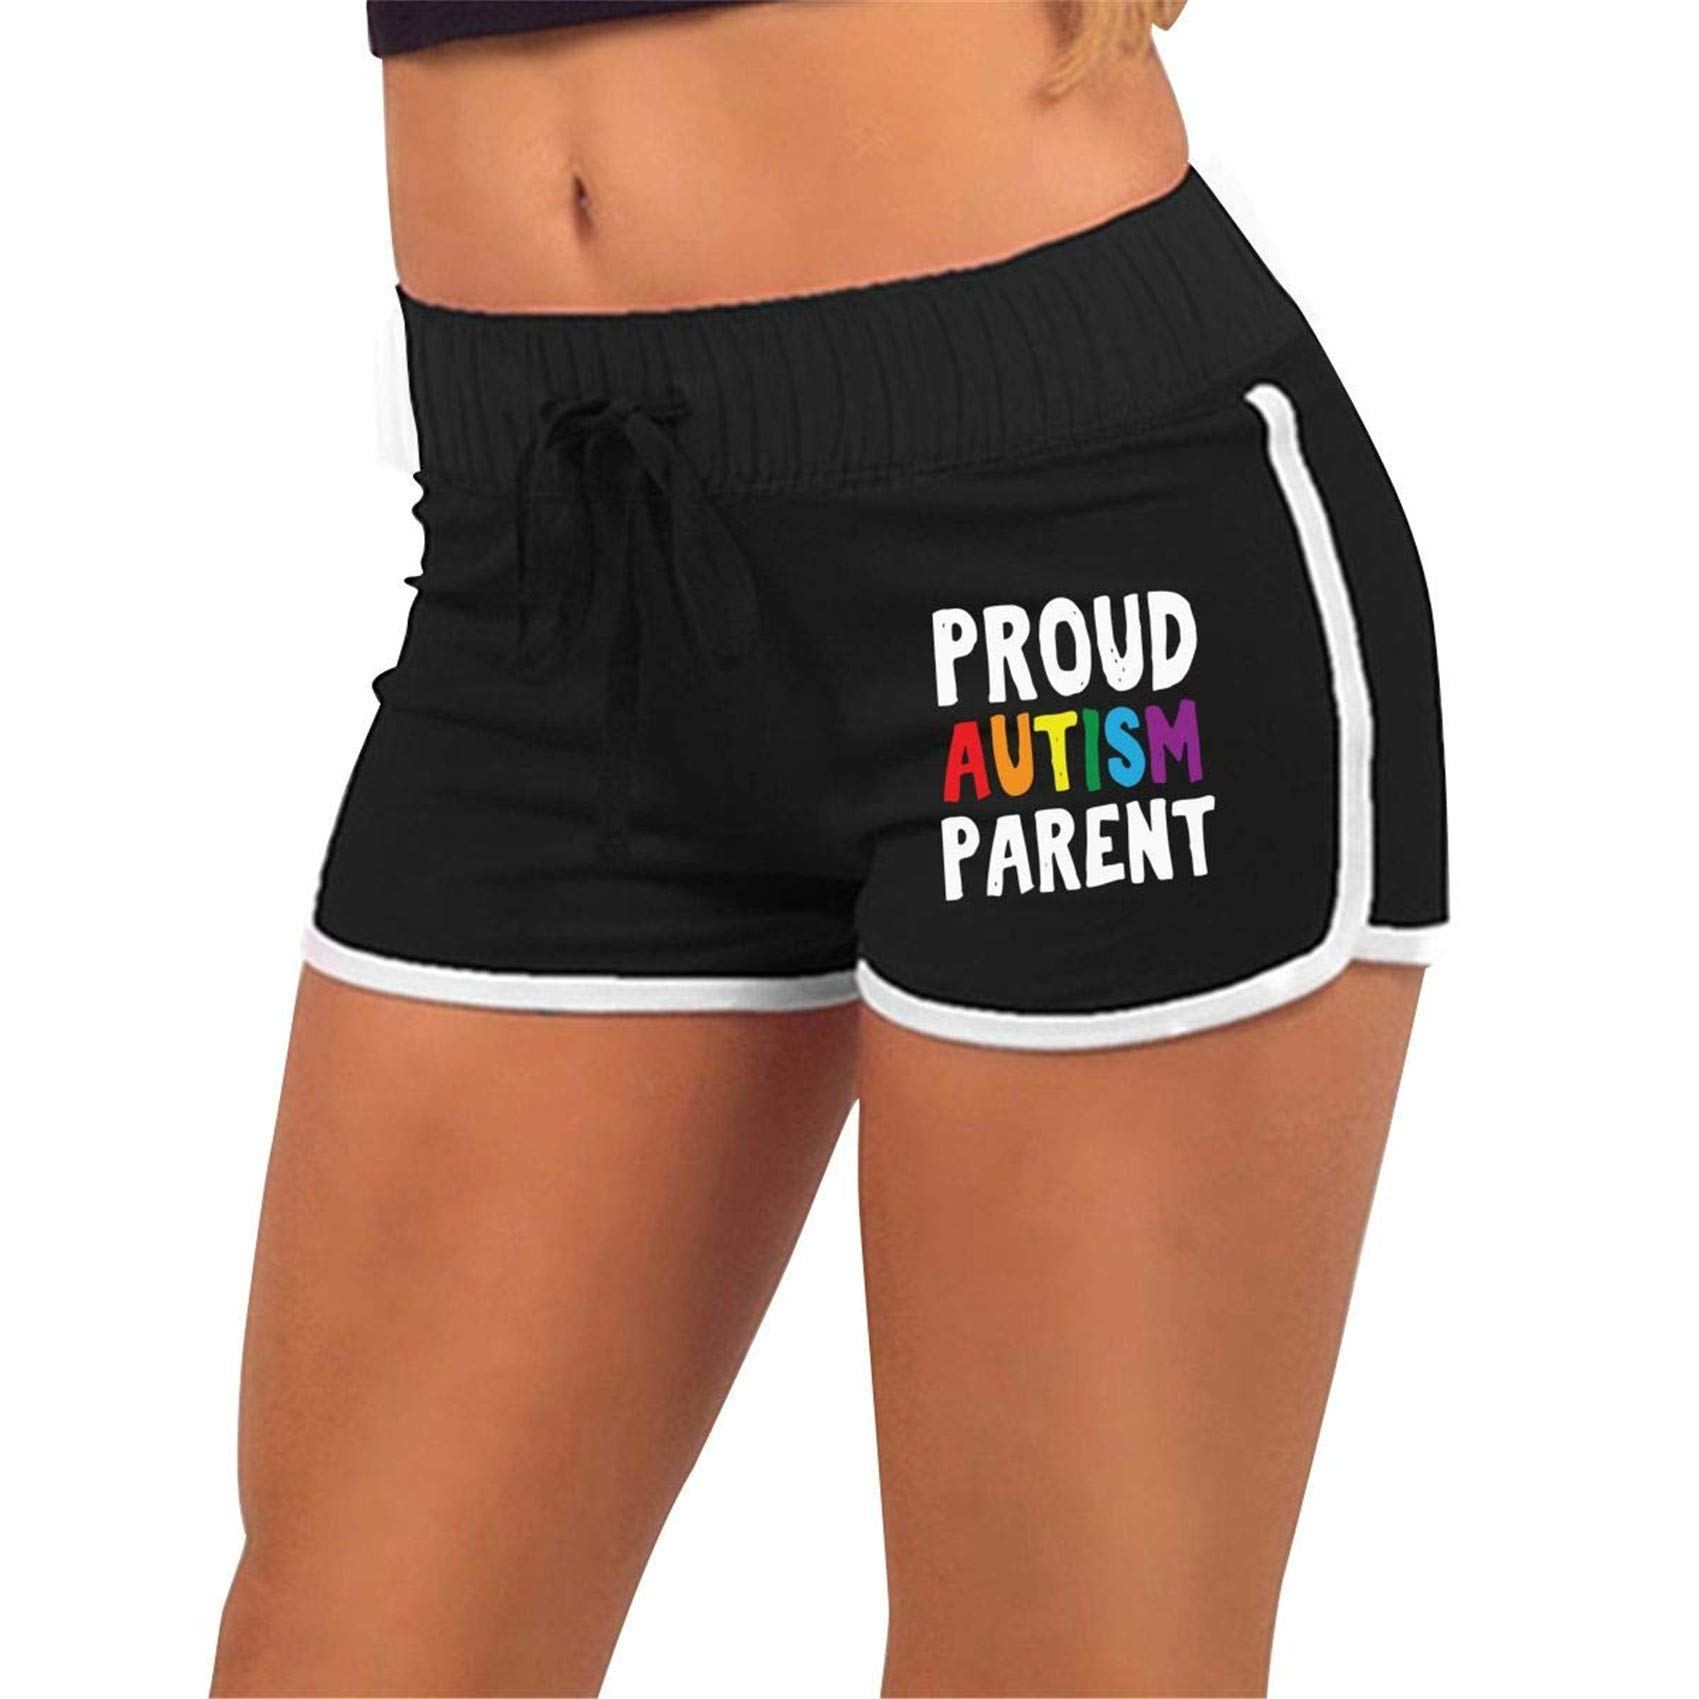 Proud Autism Parent,Running Hot Pants Pants with Athletic Elastic Waist Womens Sports Fitness Yoga Shorts